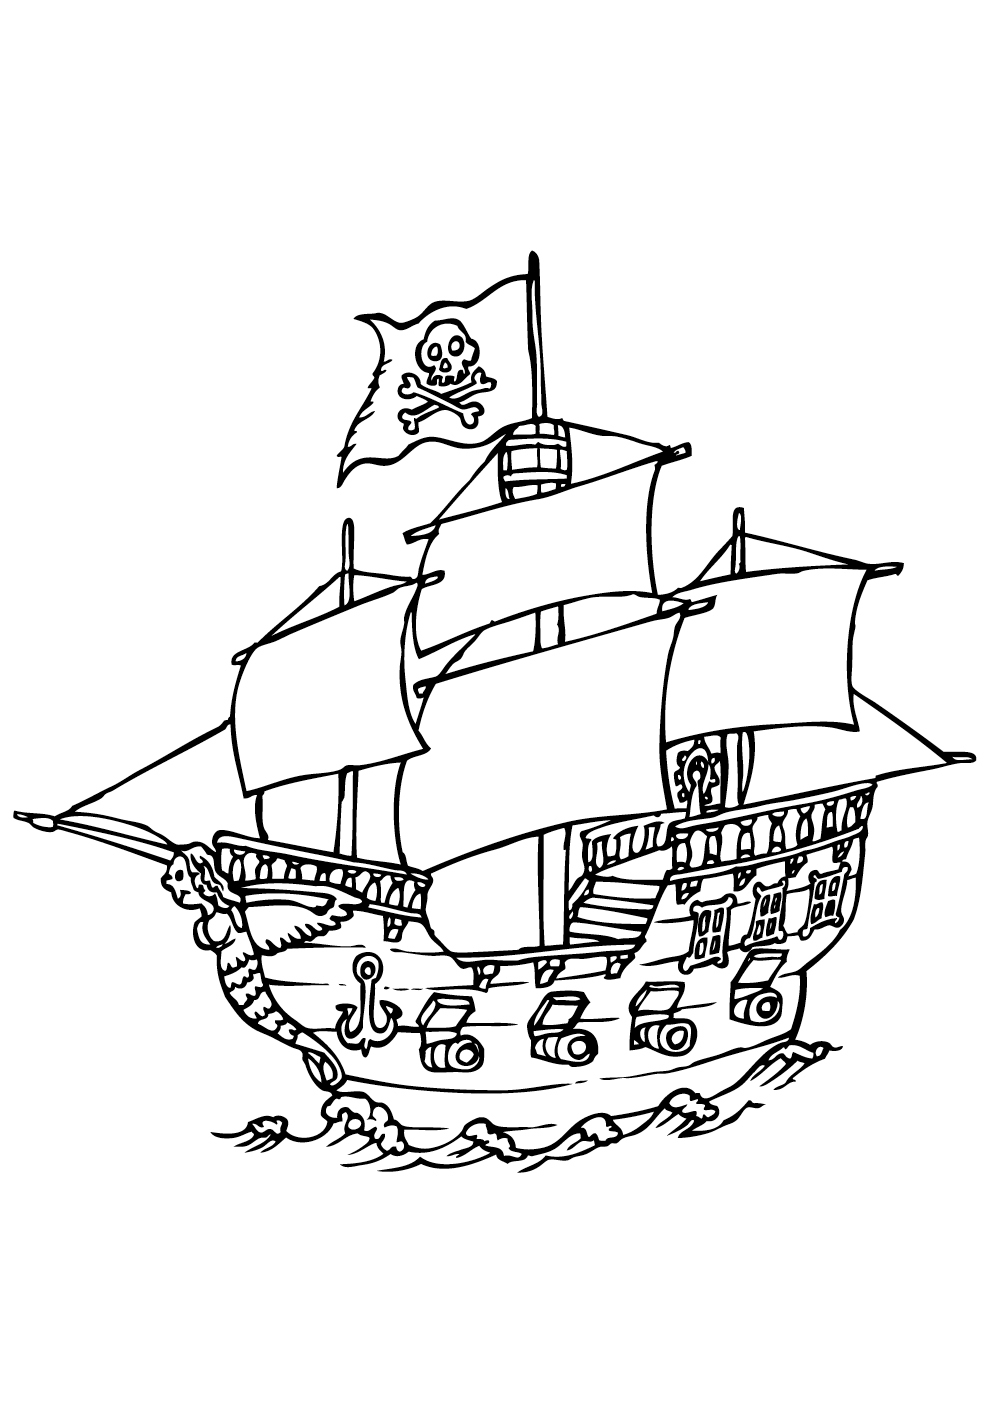 Simple Pirates coloring page to download for free